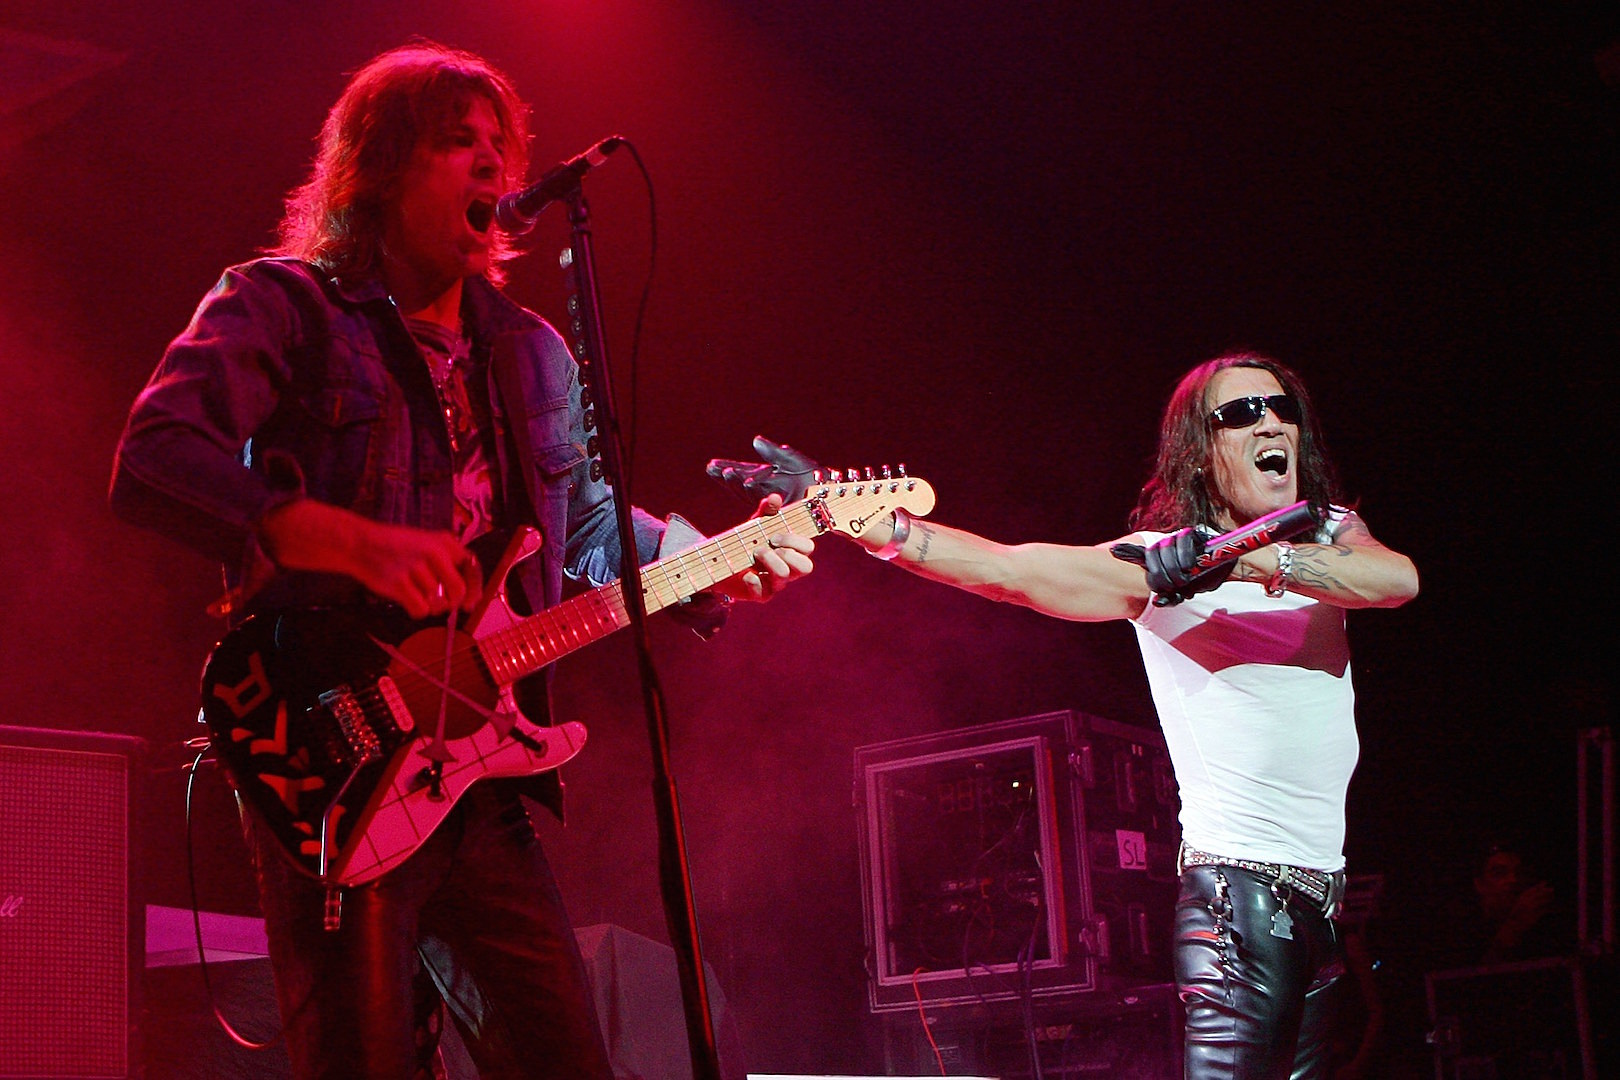 Ratt's Stephen Pearcy Wants to Reunite Classic Lineup for Album